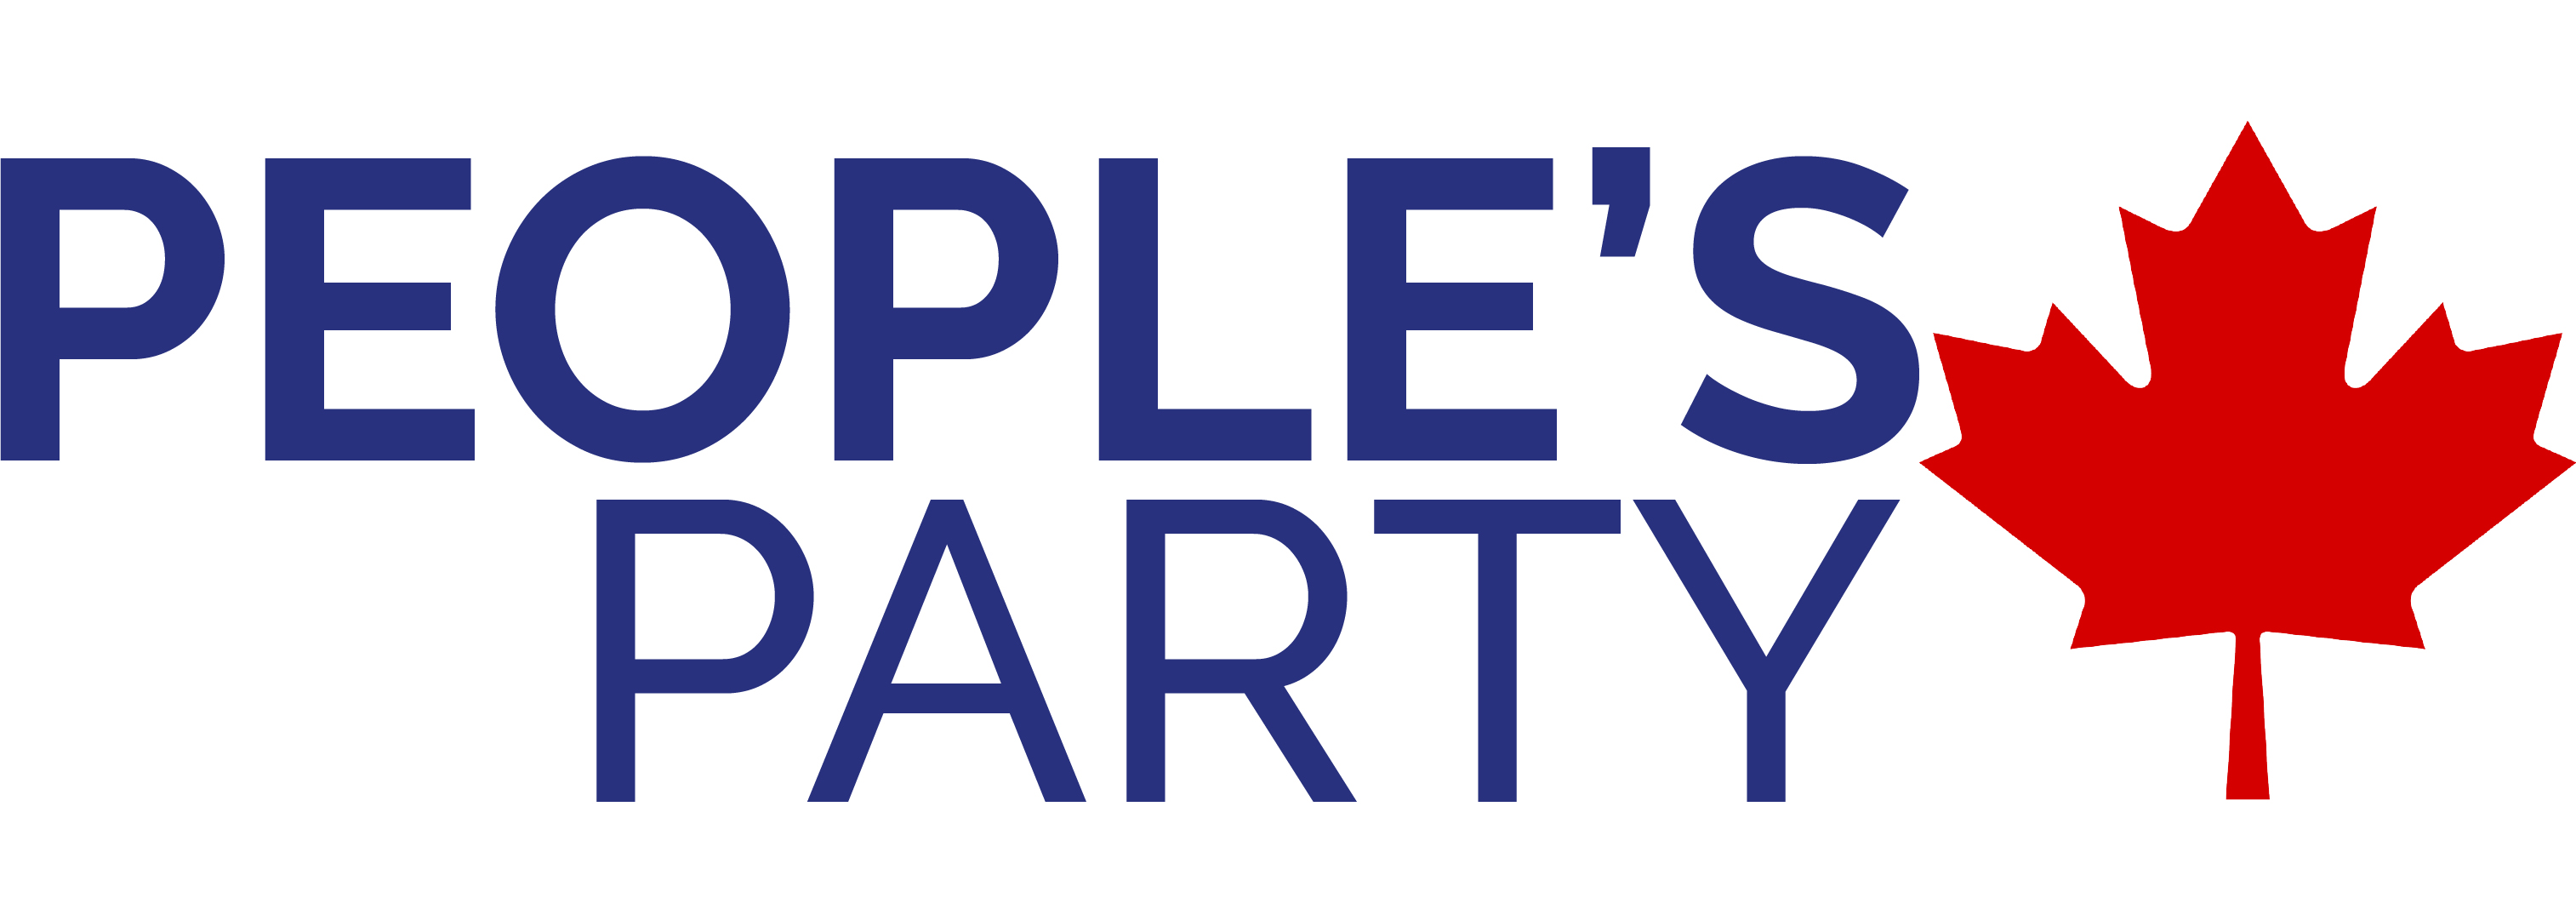 People's Party NBSW